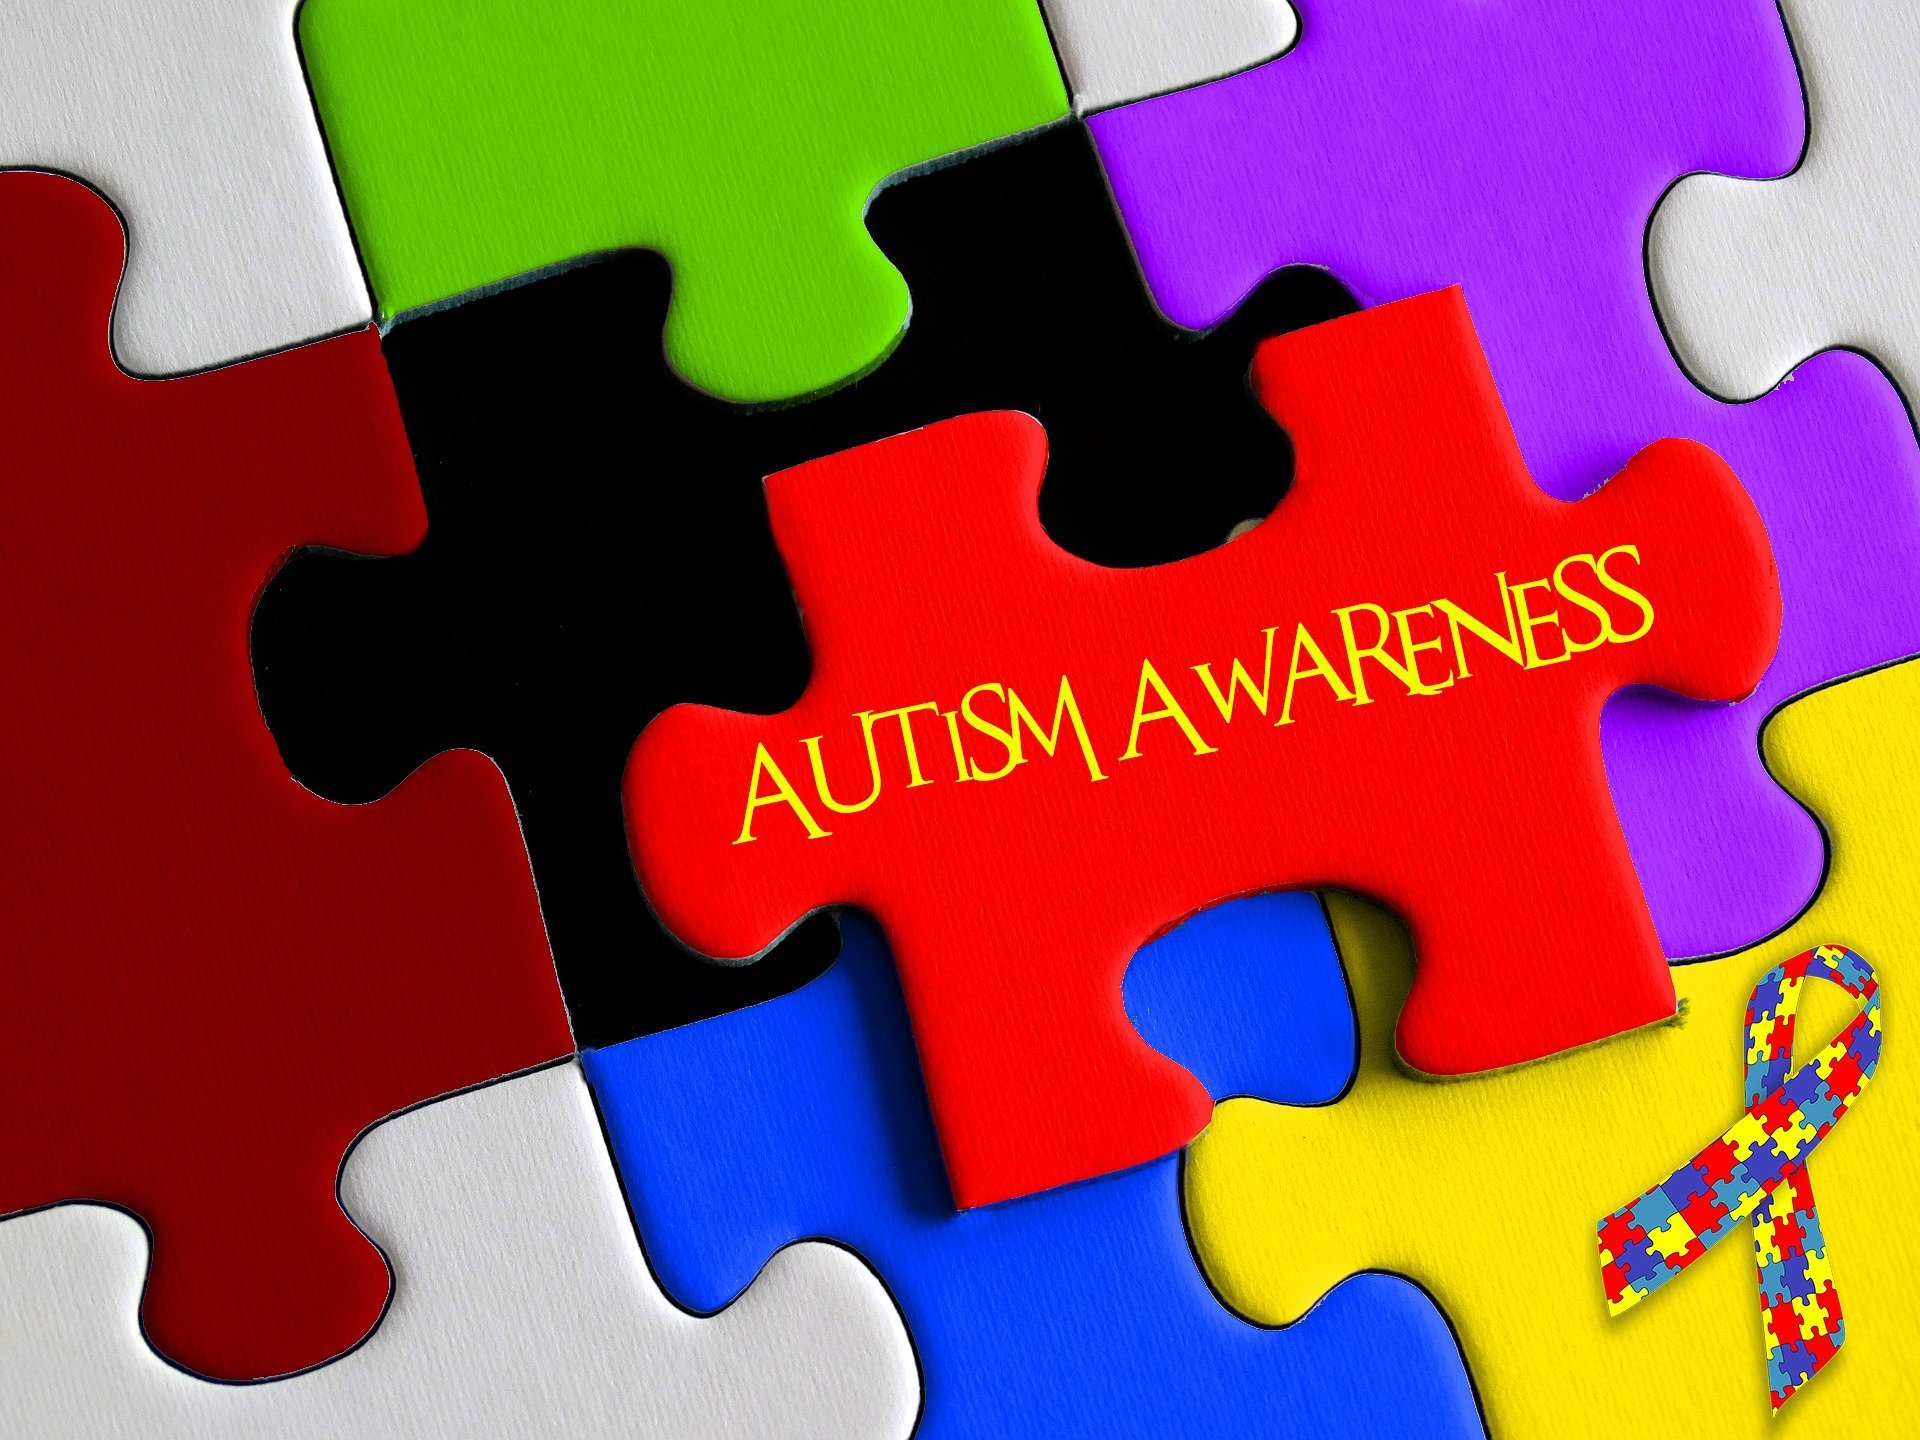 Positive well-being may protect against depression in people with autism